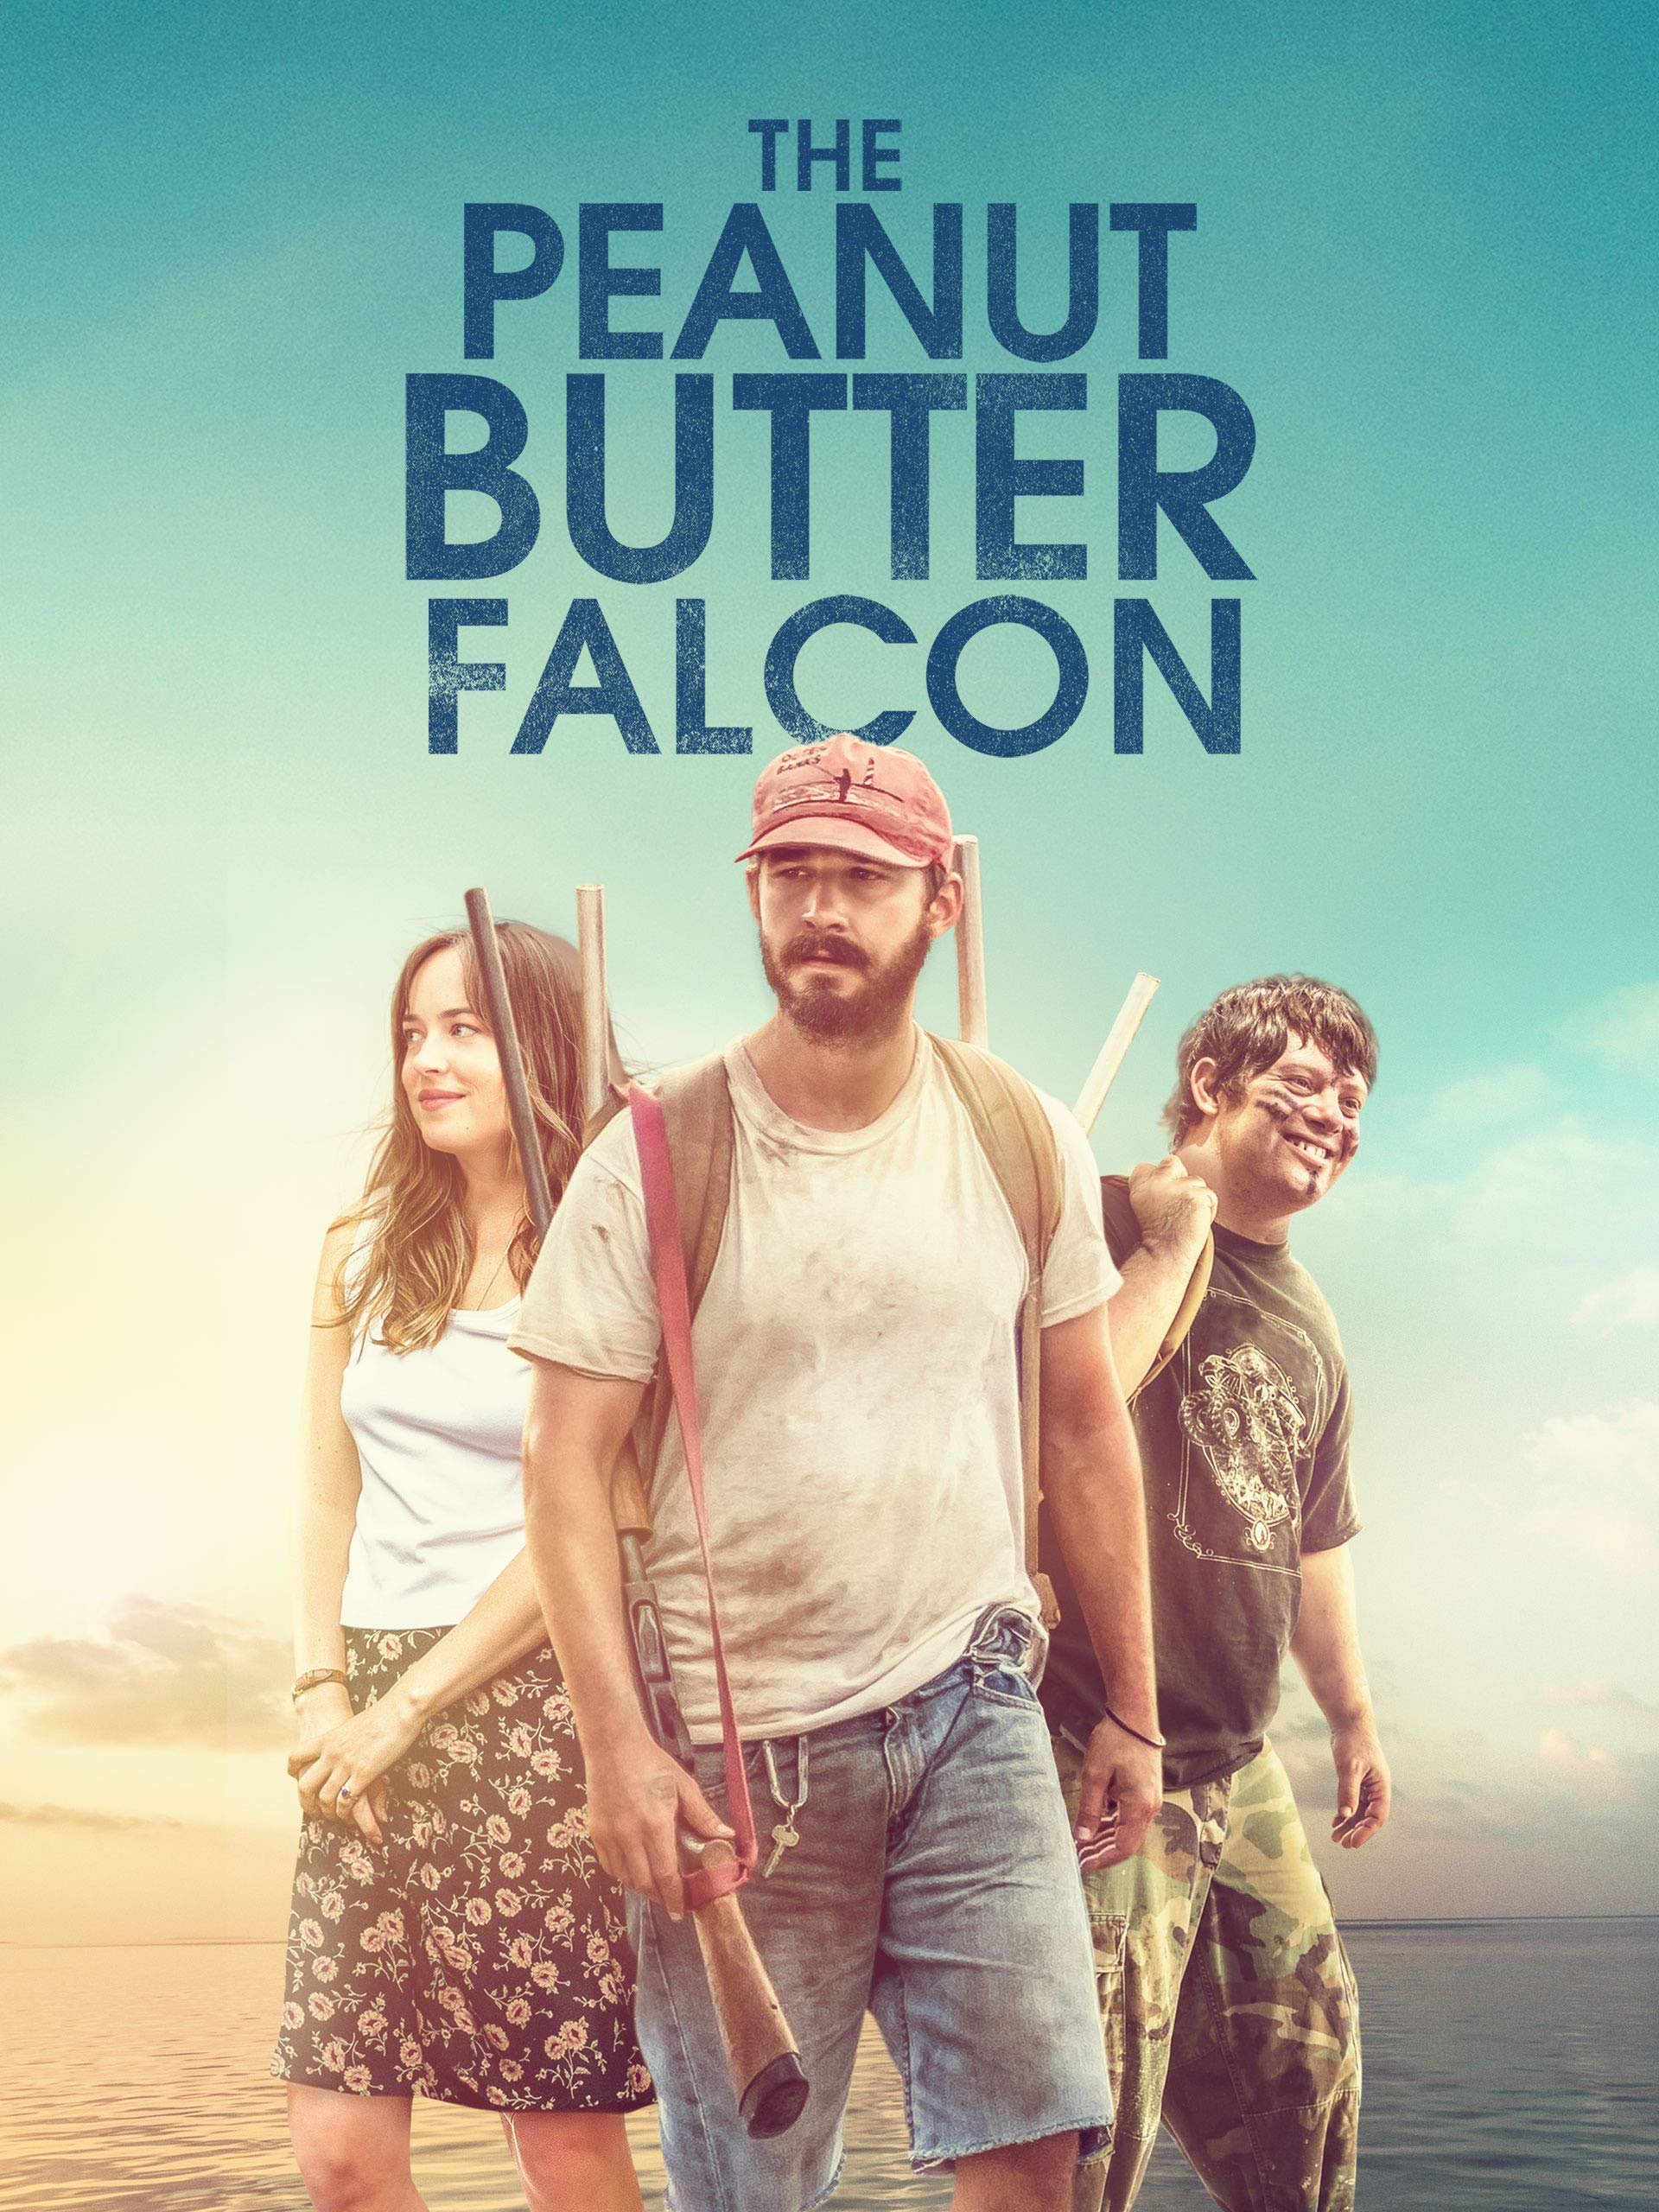 image of the Peanut Butter Falcon movie with the 3 main characters